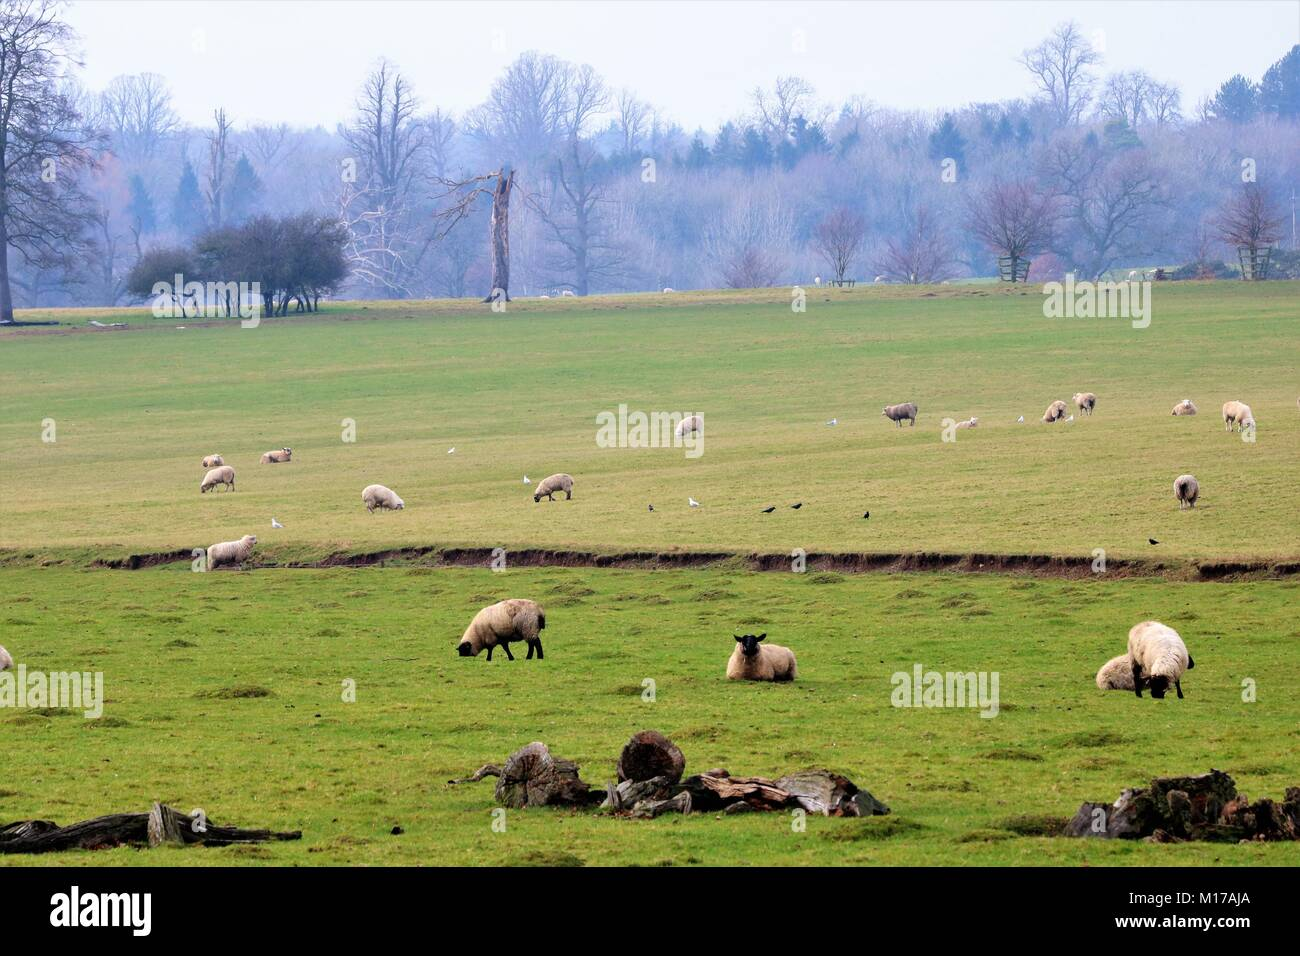 Green field full of sheep grazing in the winter sunshine in UK - Stock Image